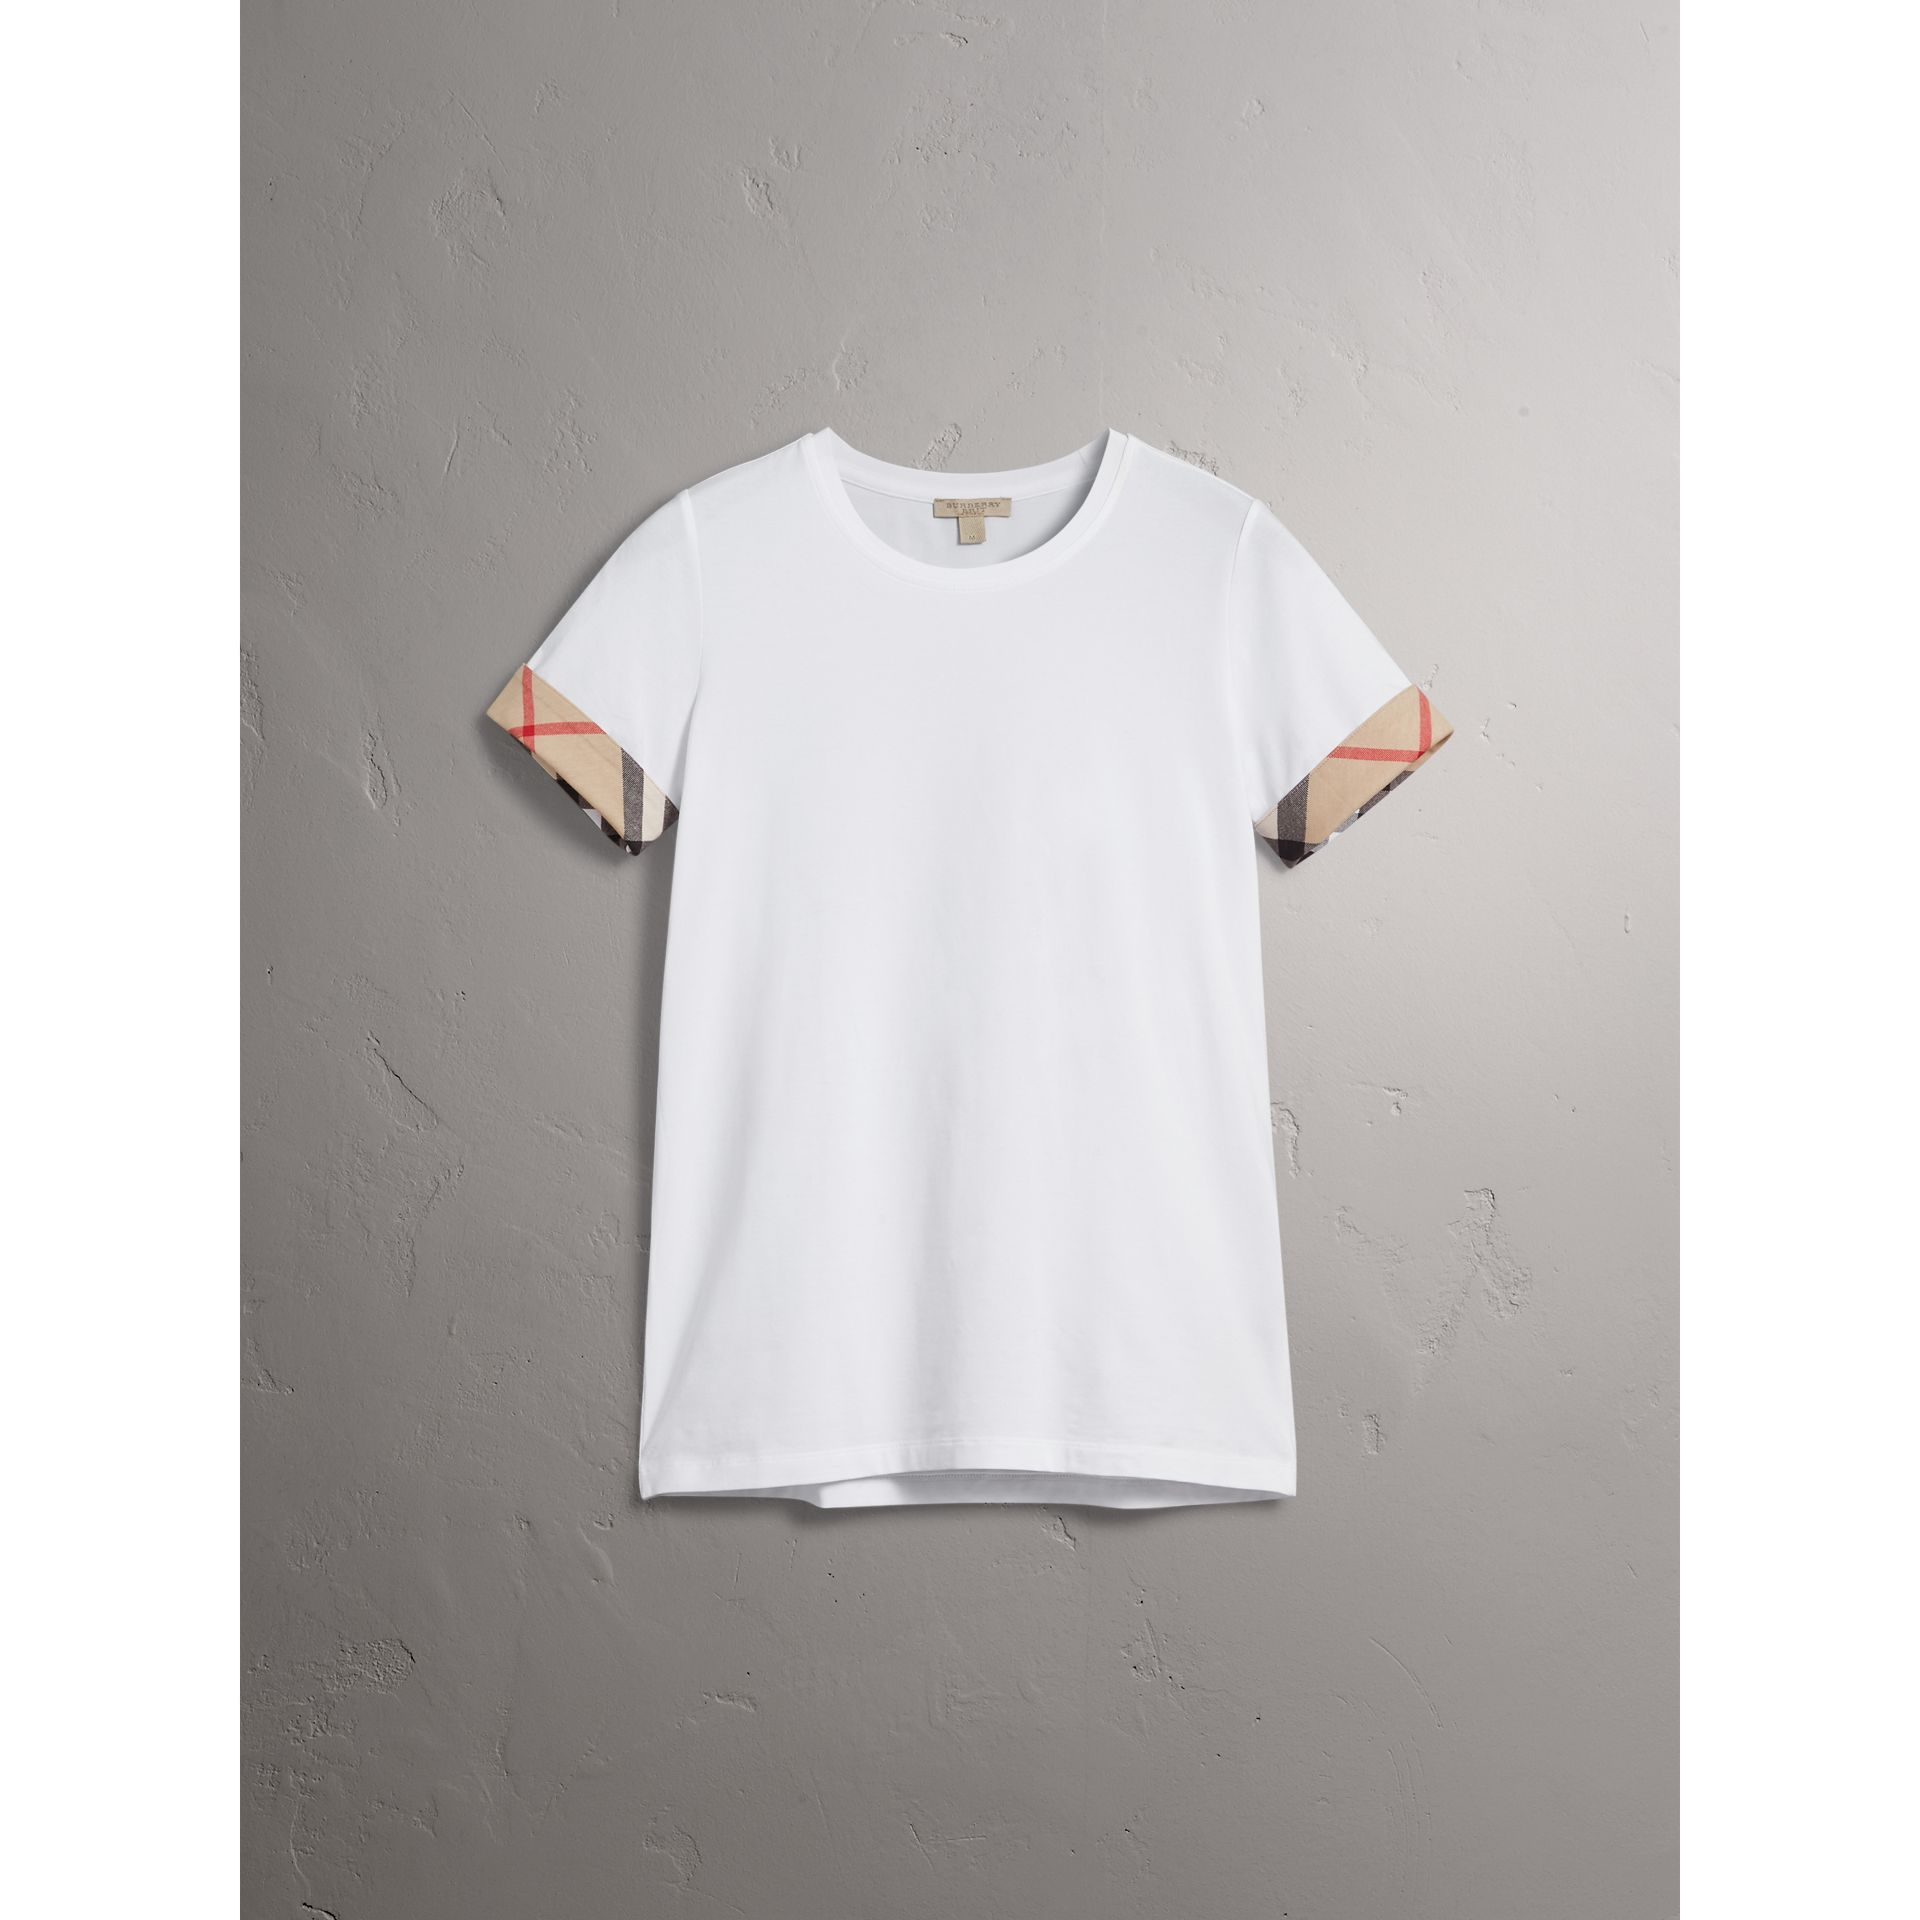 Check Cuff Stretch Cotton T-Shirt in White - Women | Burberry Canada - gallery image 3